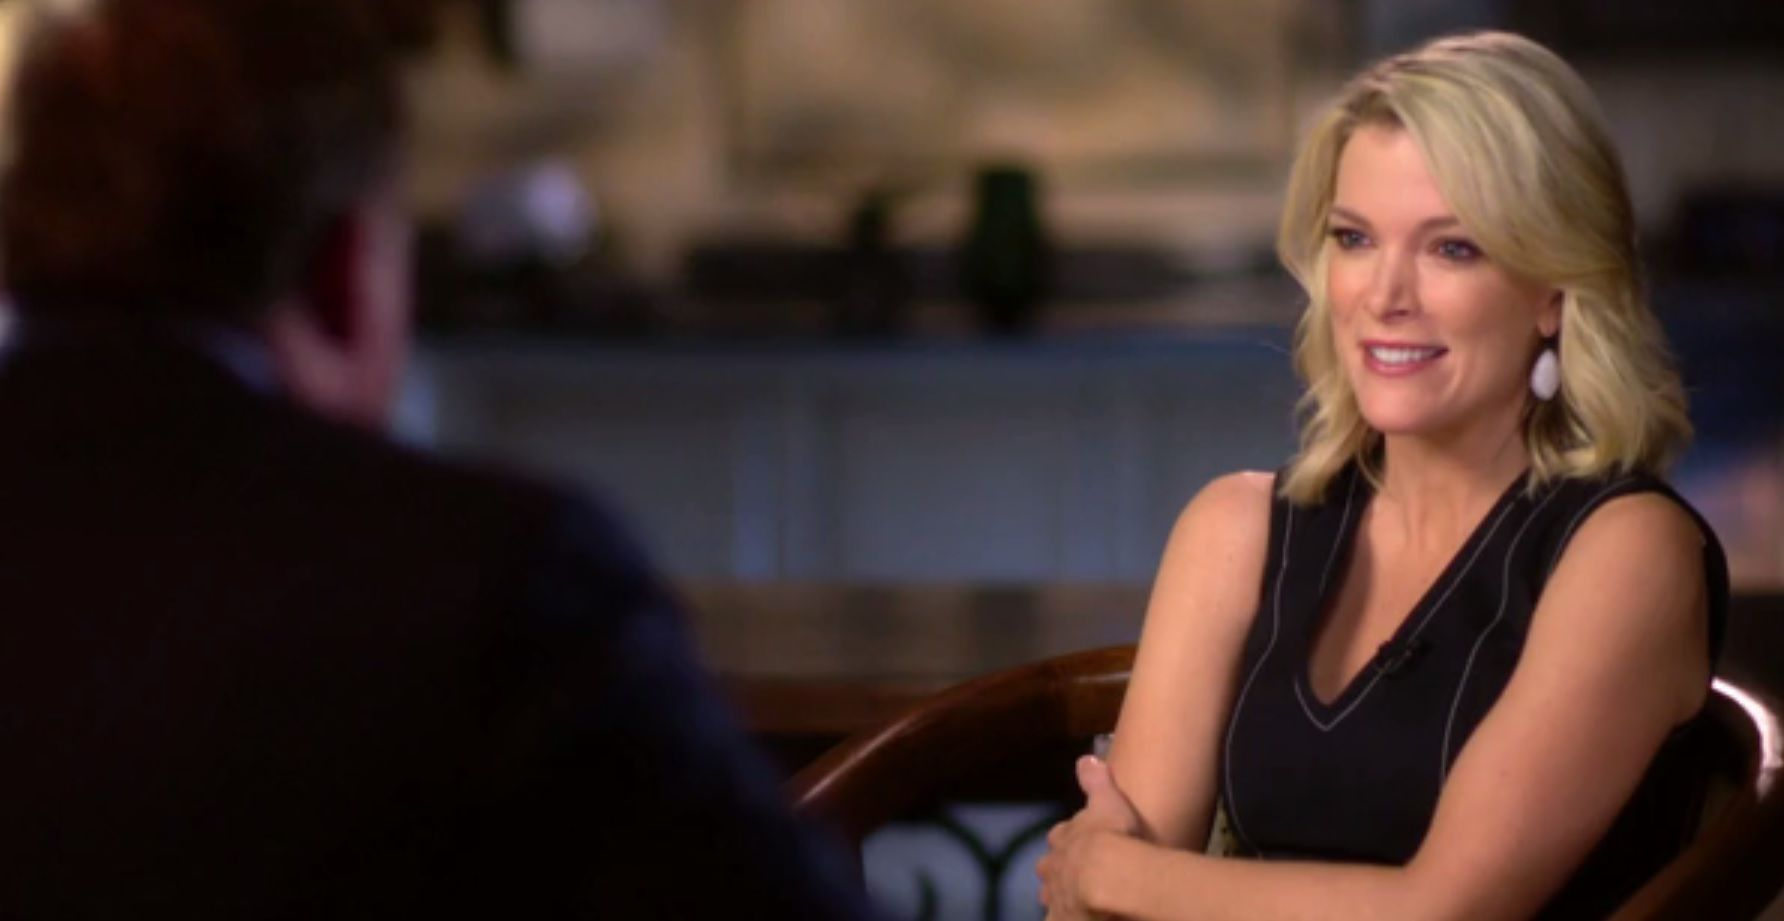 Megyn Kelly's interview with Alex Jones shows her attempting a near-impossible task